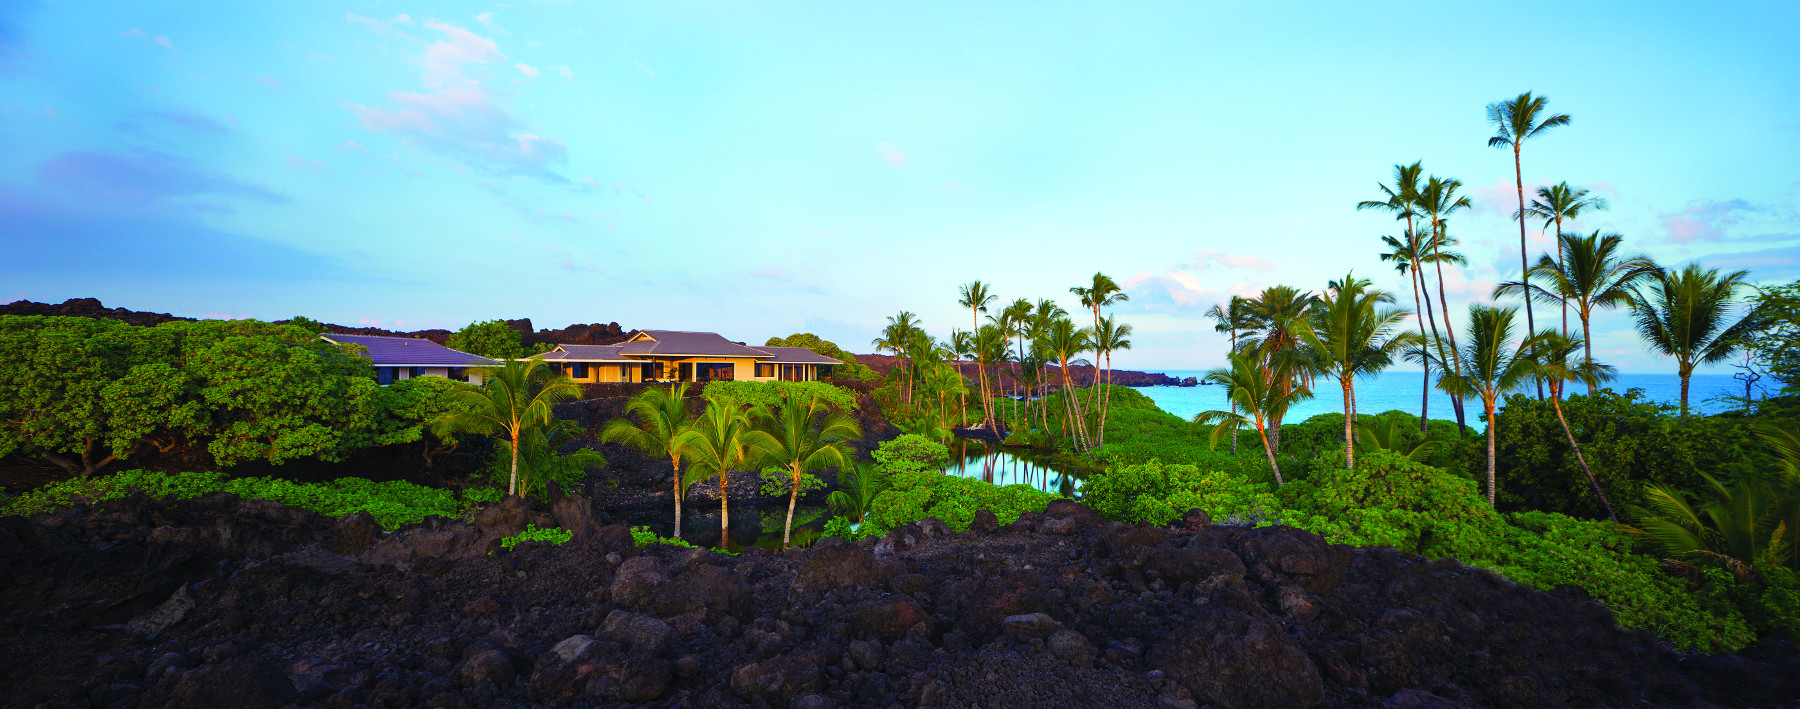 Sold: Luahinewai at Kiholo Listed At $16 Million